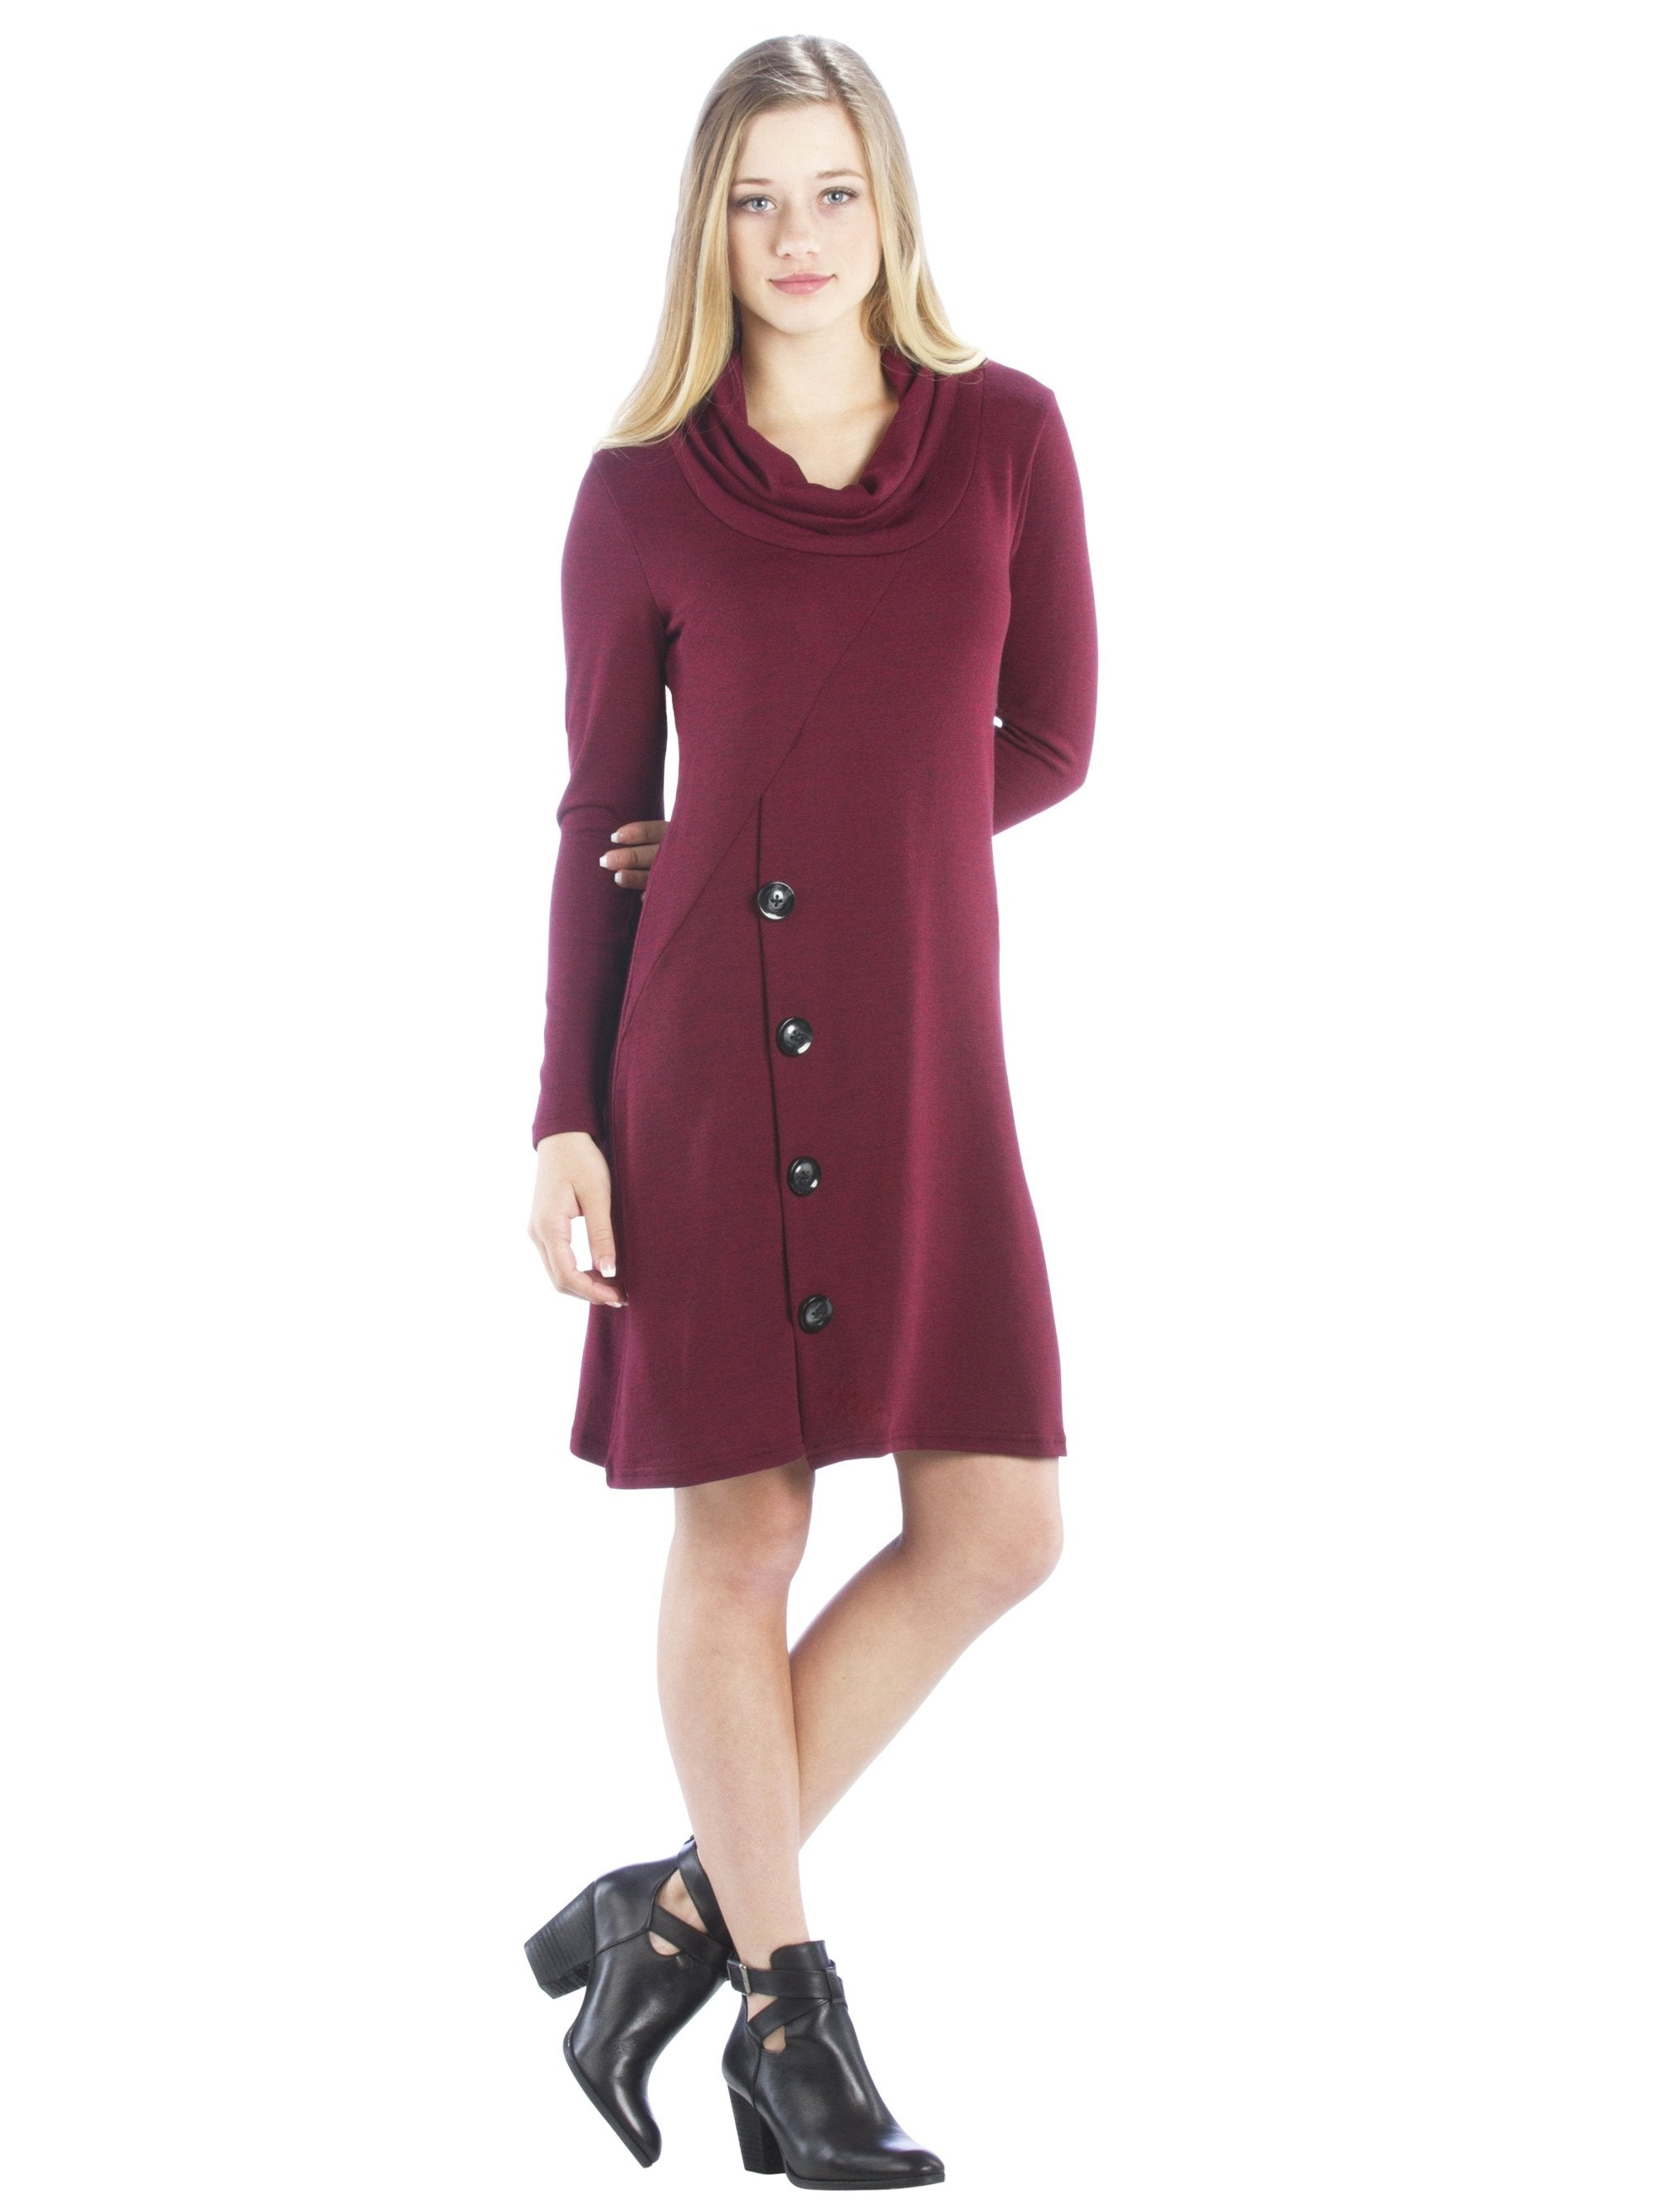 791d319f93 Cowl Neck Sweater Dress with Buttons